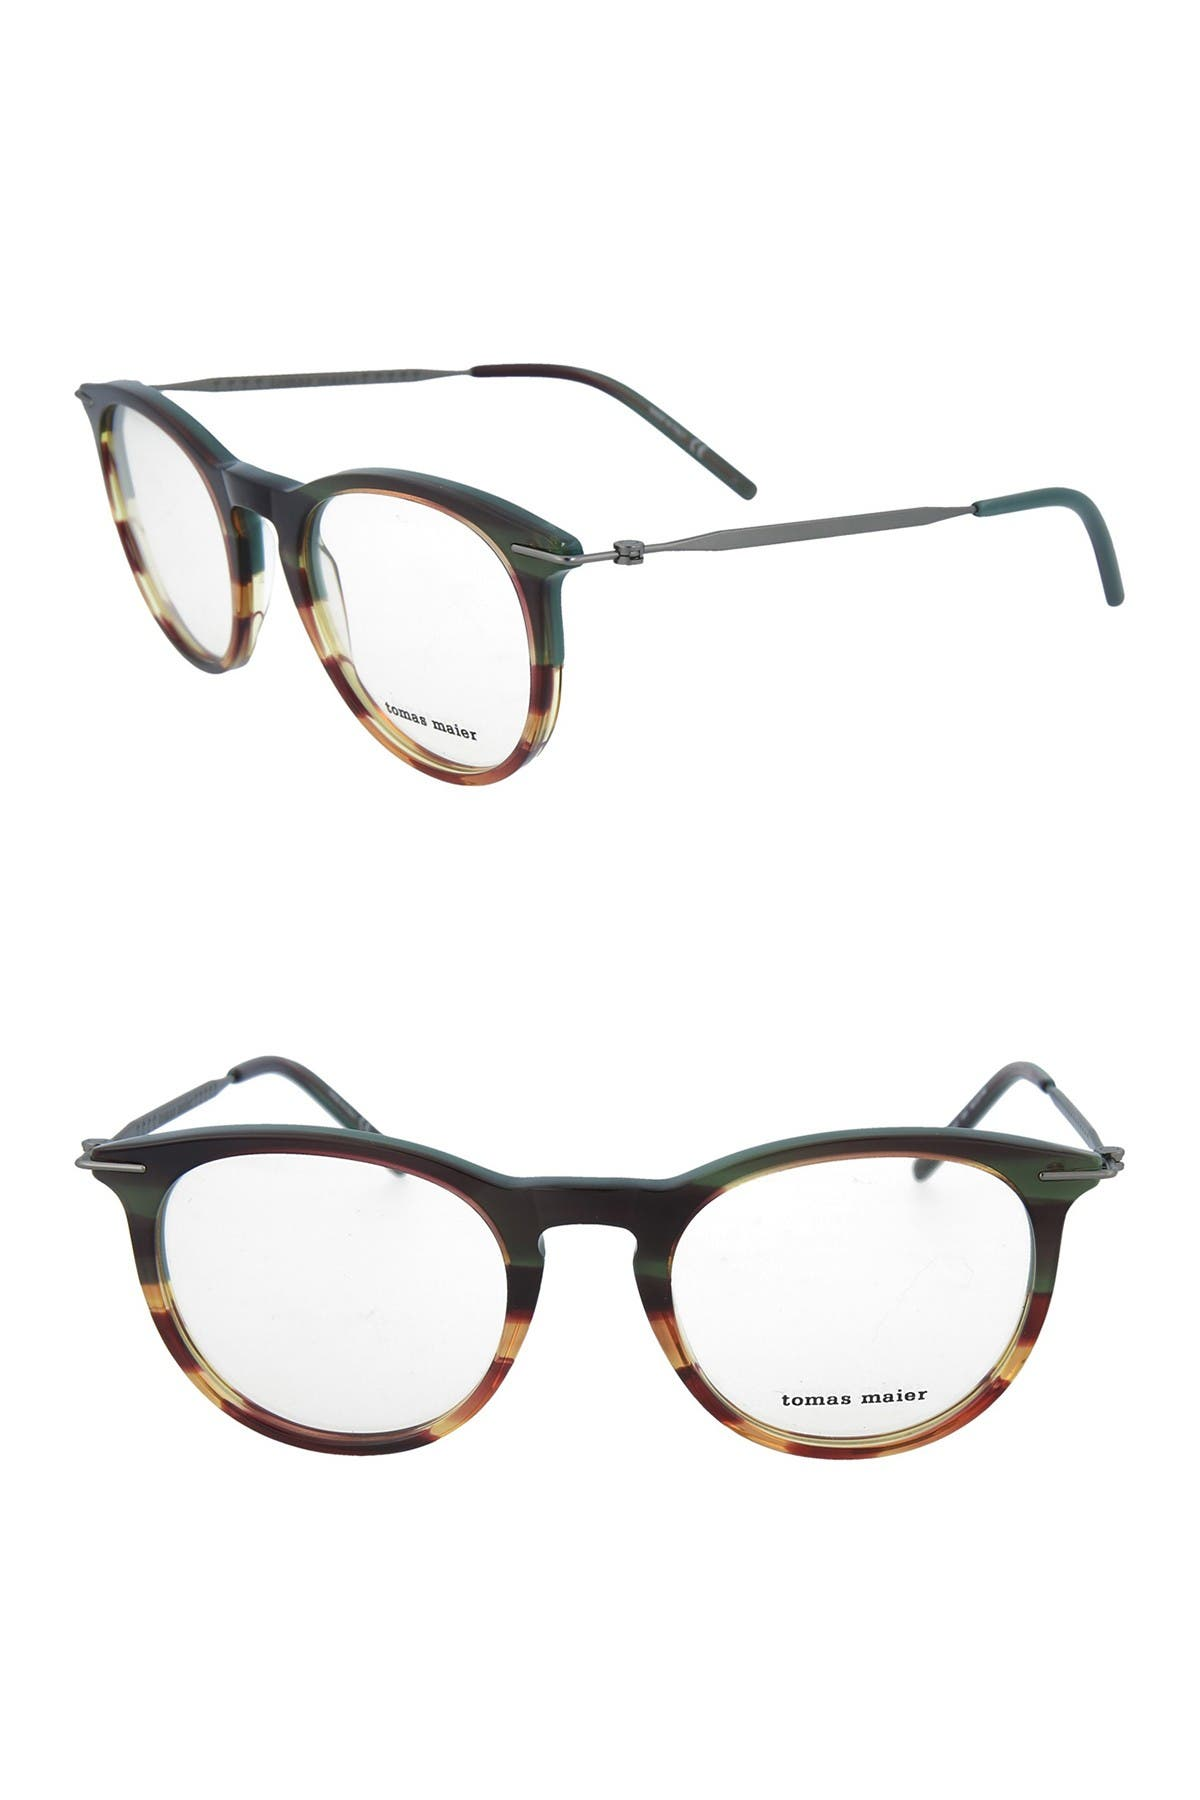 Image of Tomas Maier 50mm Acetate Metal Round Optical Frames